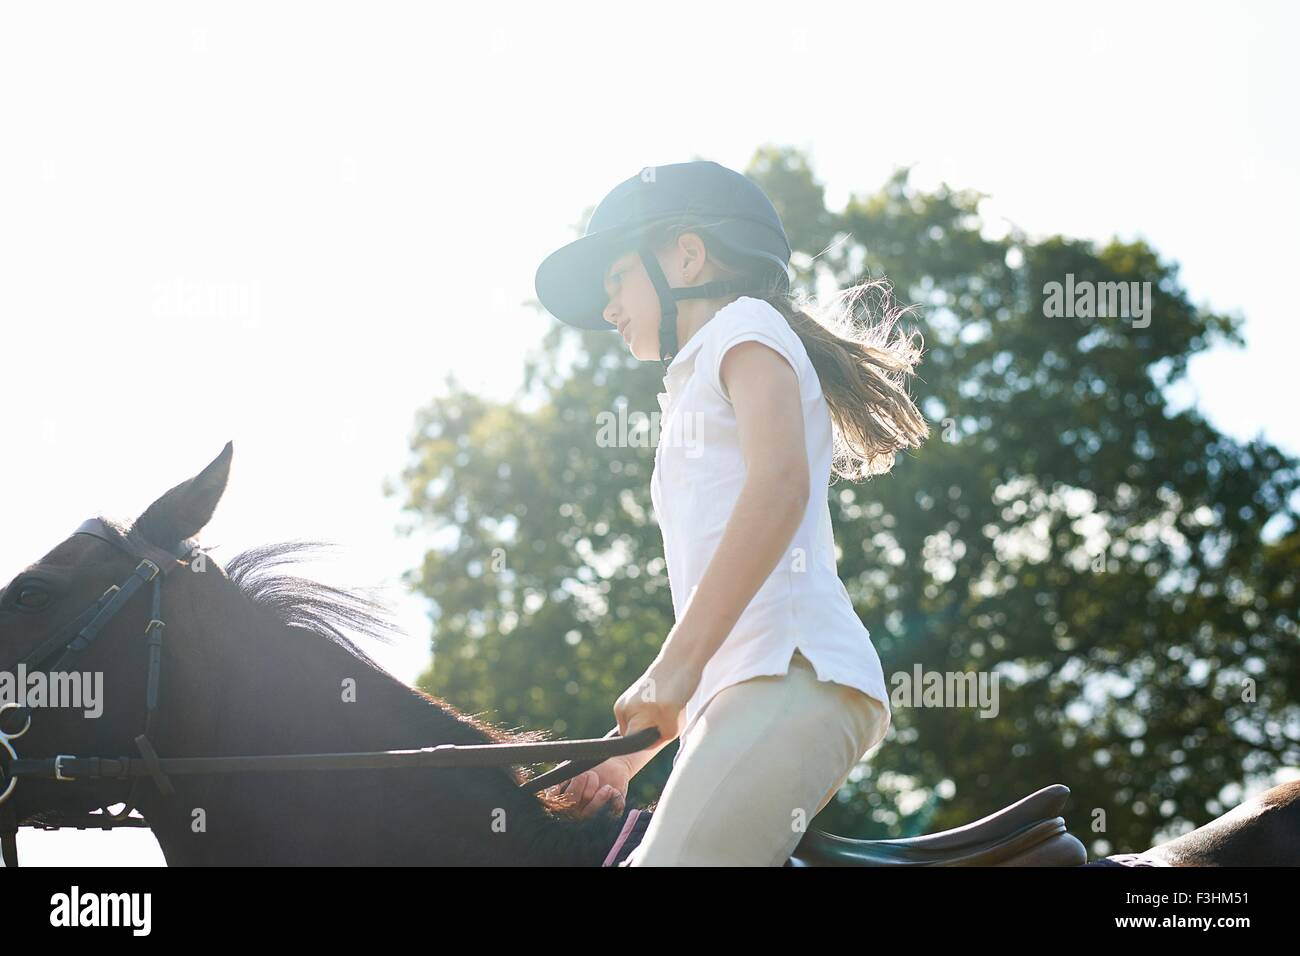 Cropped view of girl riding horse in countryside - Stock Image